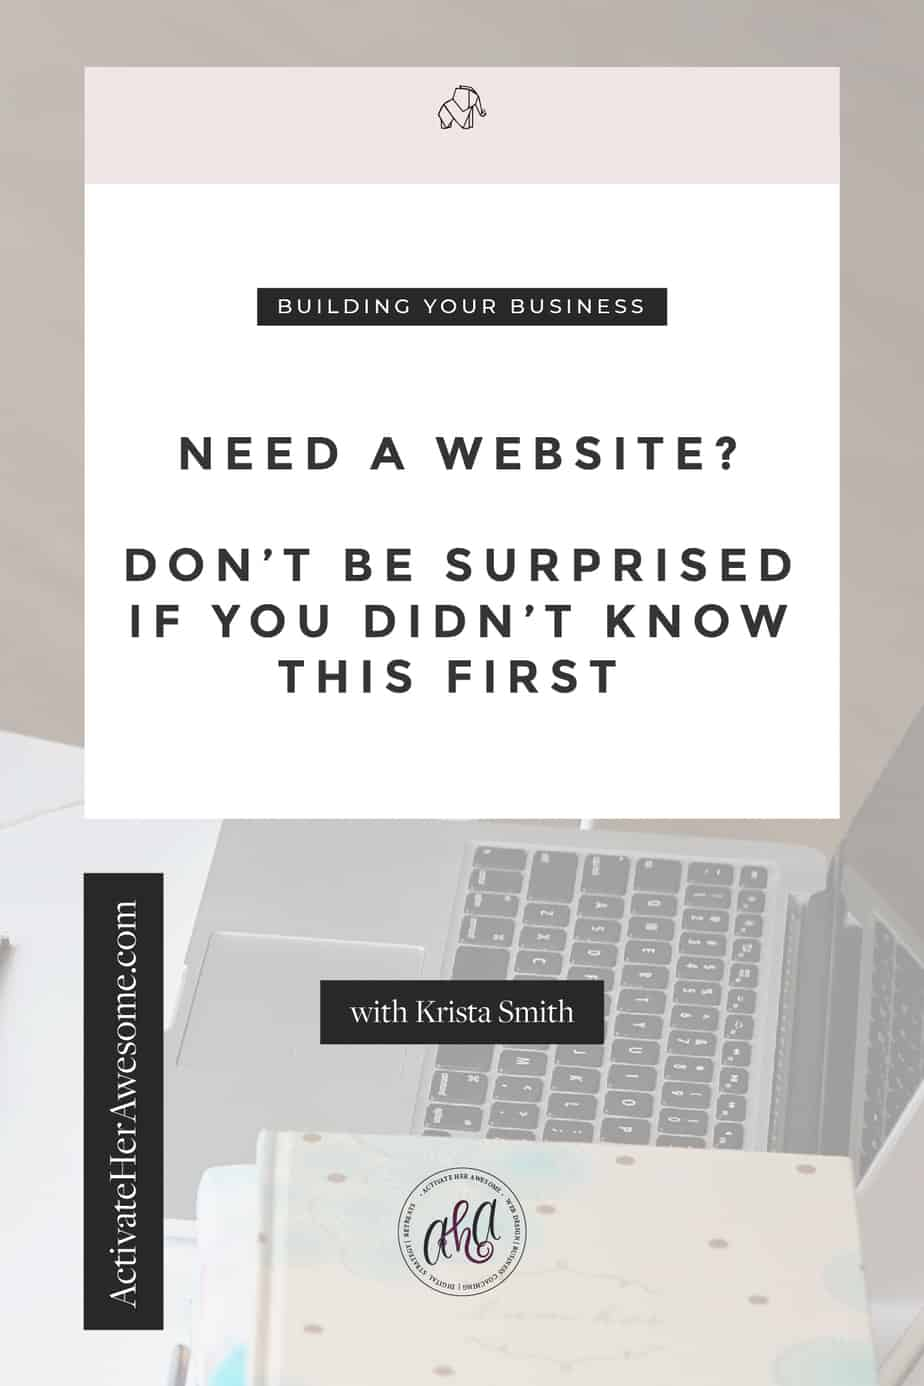 Need a website? Don't be surprised if you didn't know this first by Krista Smith